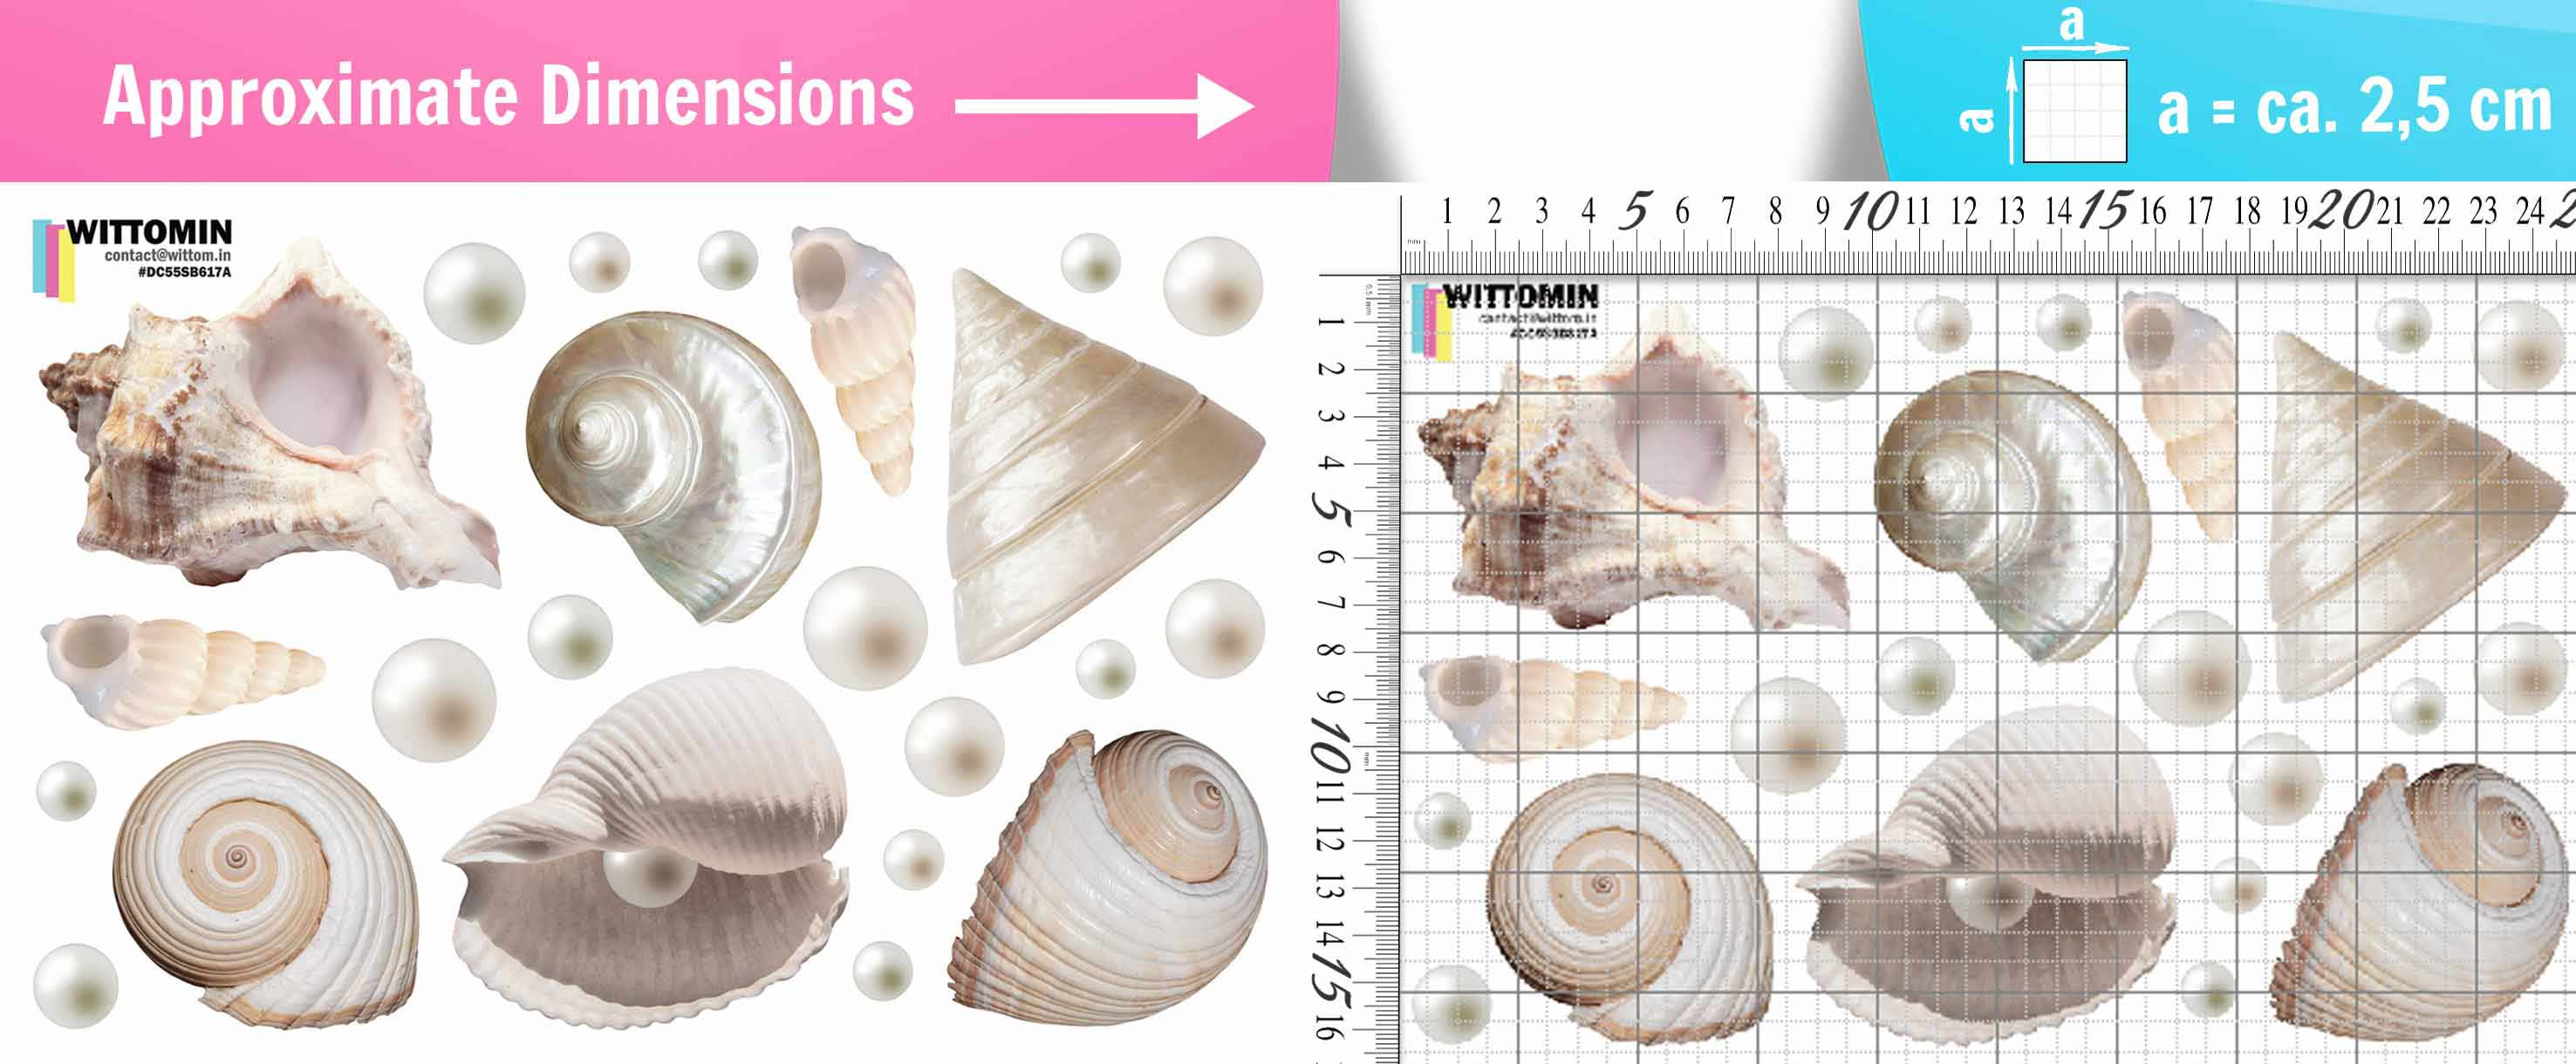 Shells and pearls sticker set from Wittomin